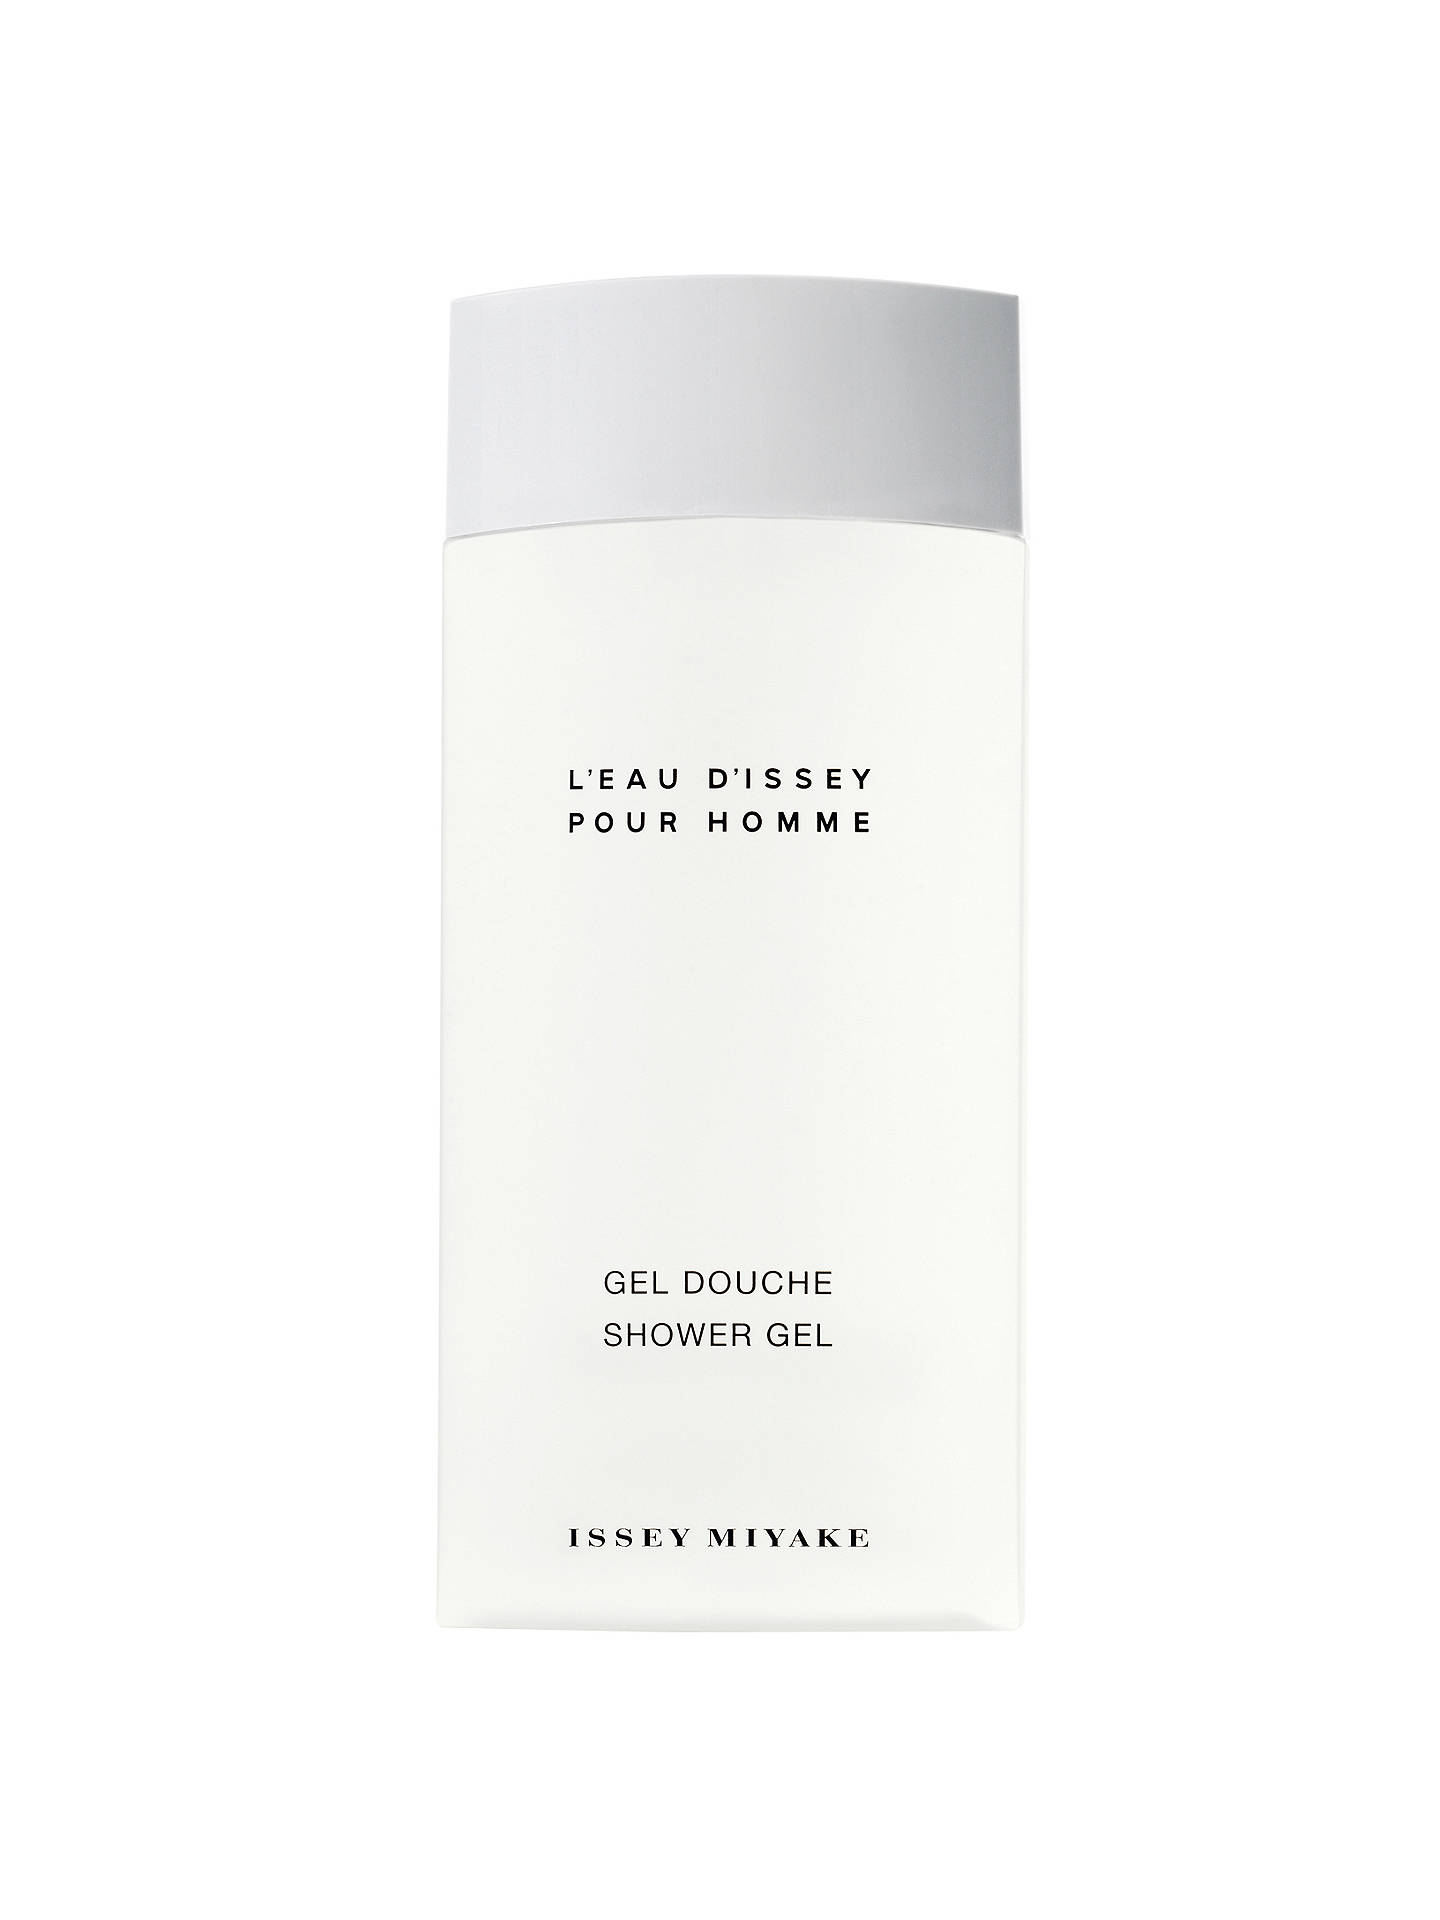 issey miyake l 39 eau d 39 issey pour homme shower gel 200ml at john lewis partners